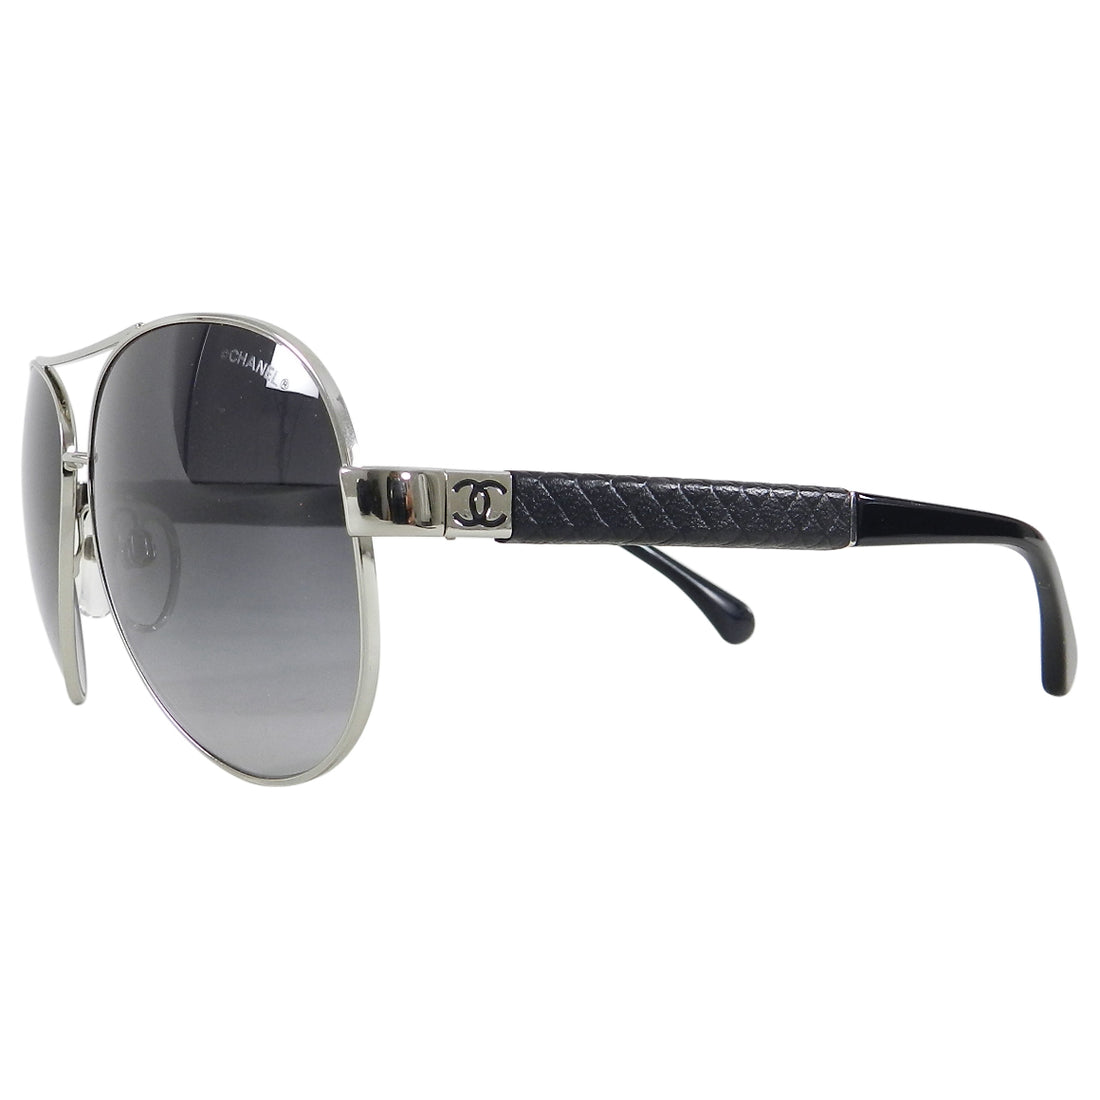 Chanel 4195 Silver Aviator Sunglasses in case